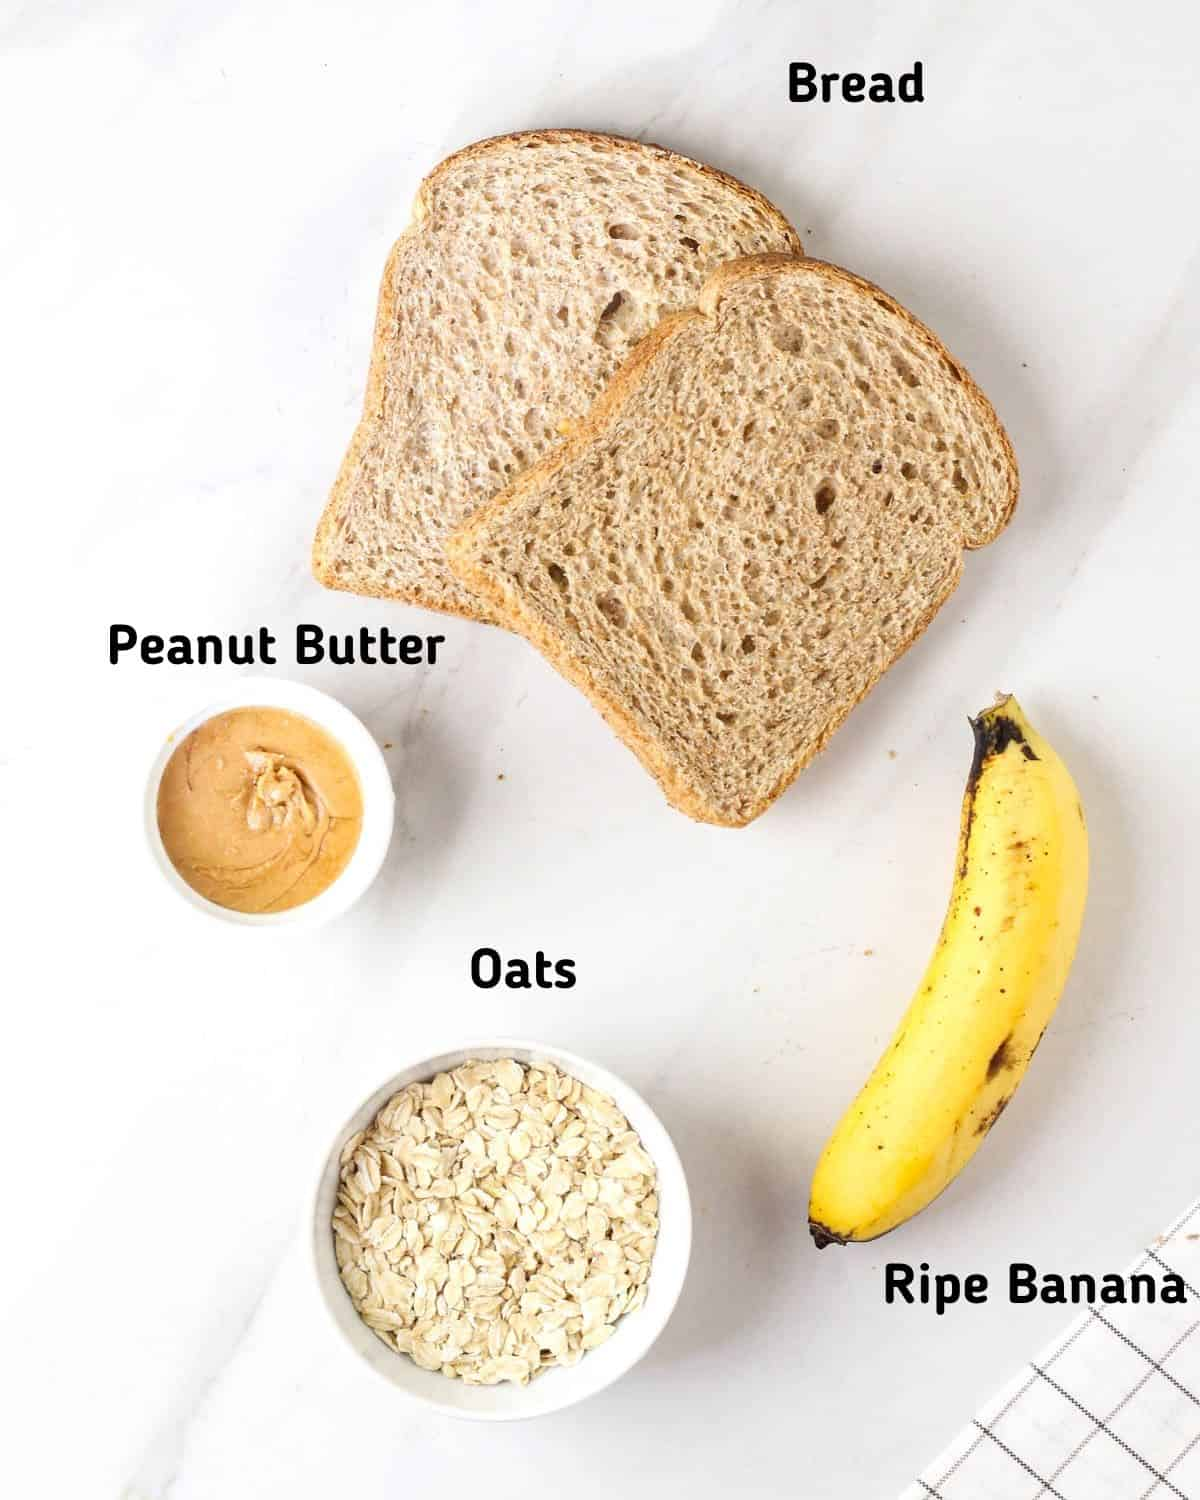 Ingredients needed for this recipe like bread, peanut butter, banana and oats.